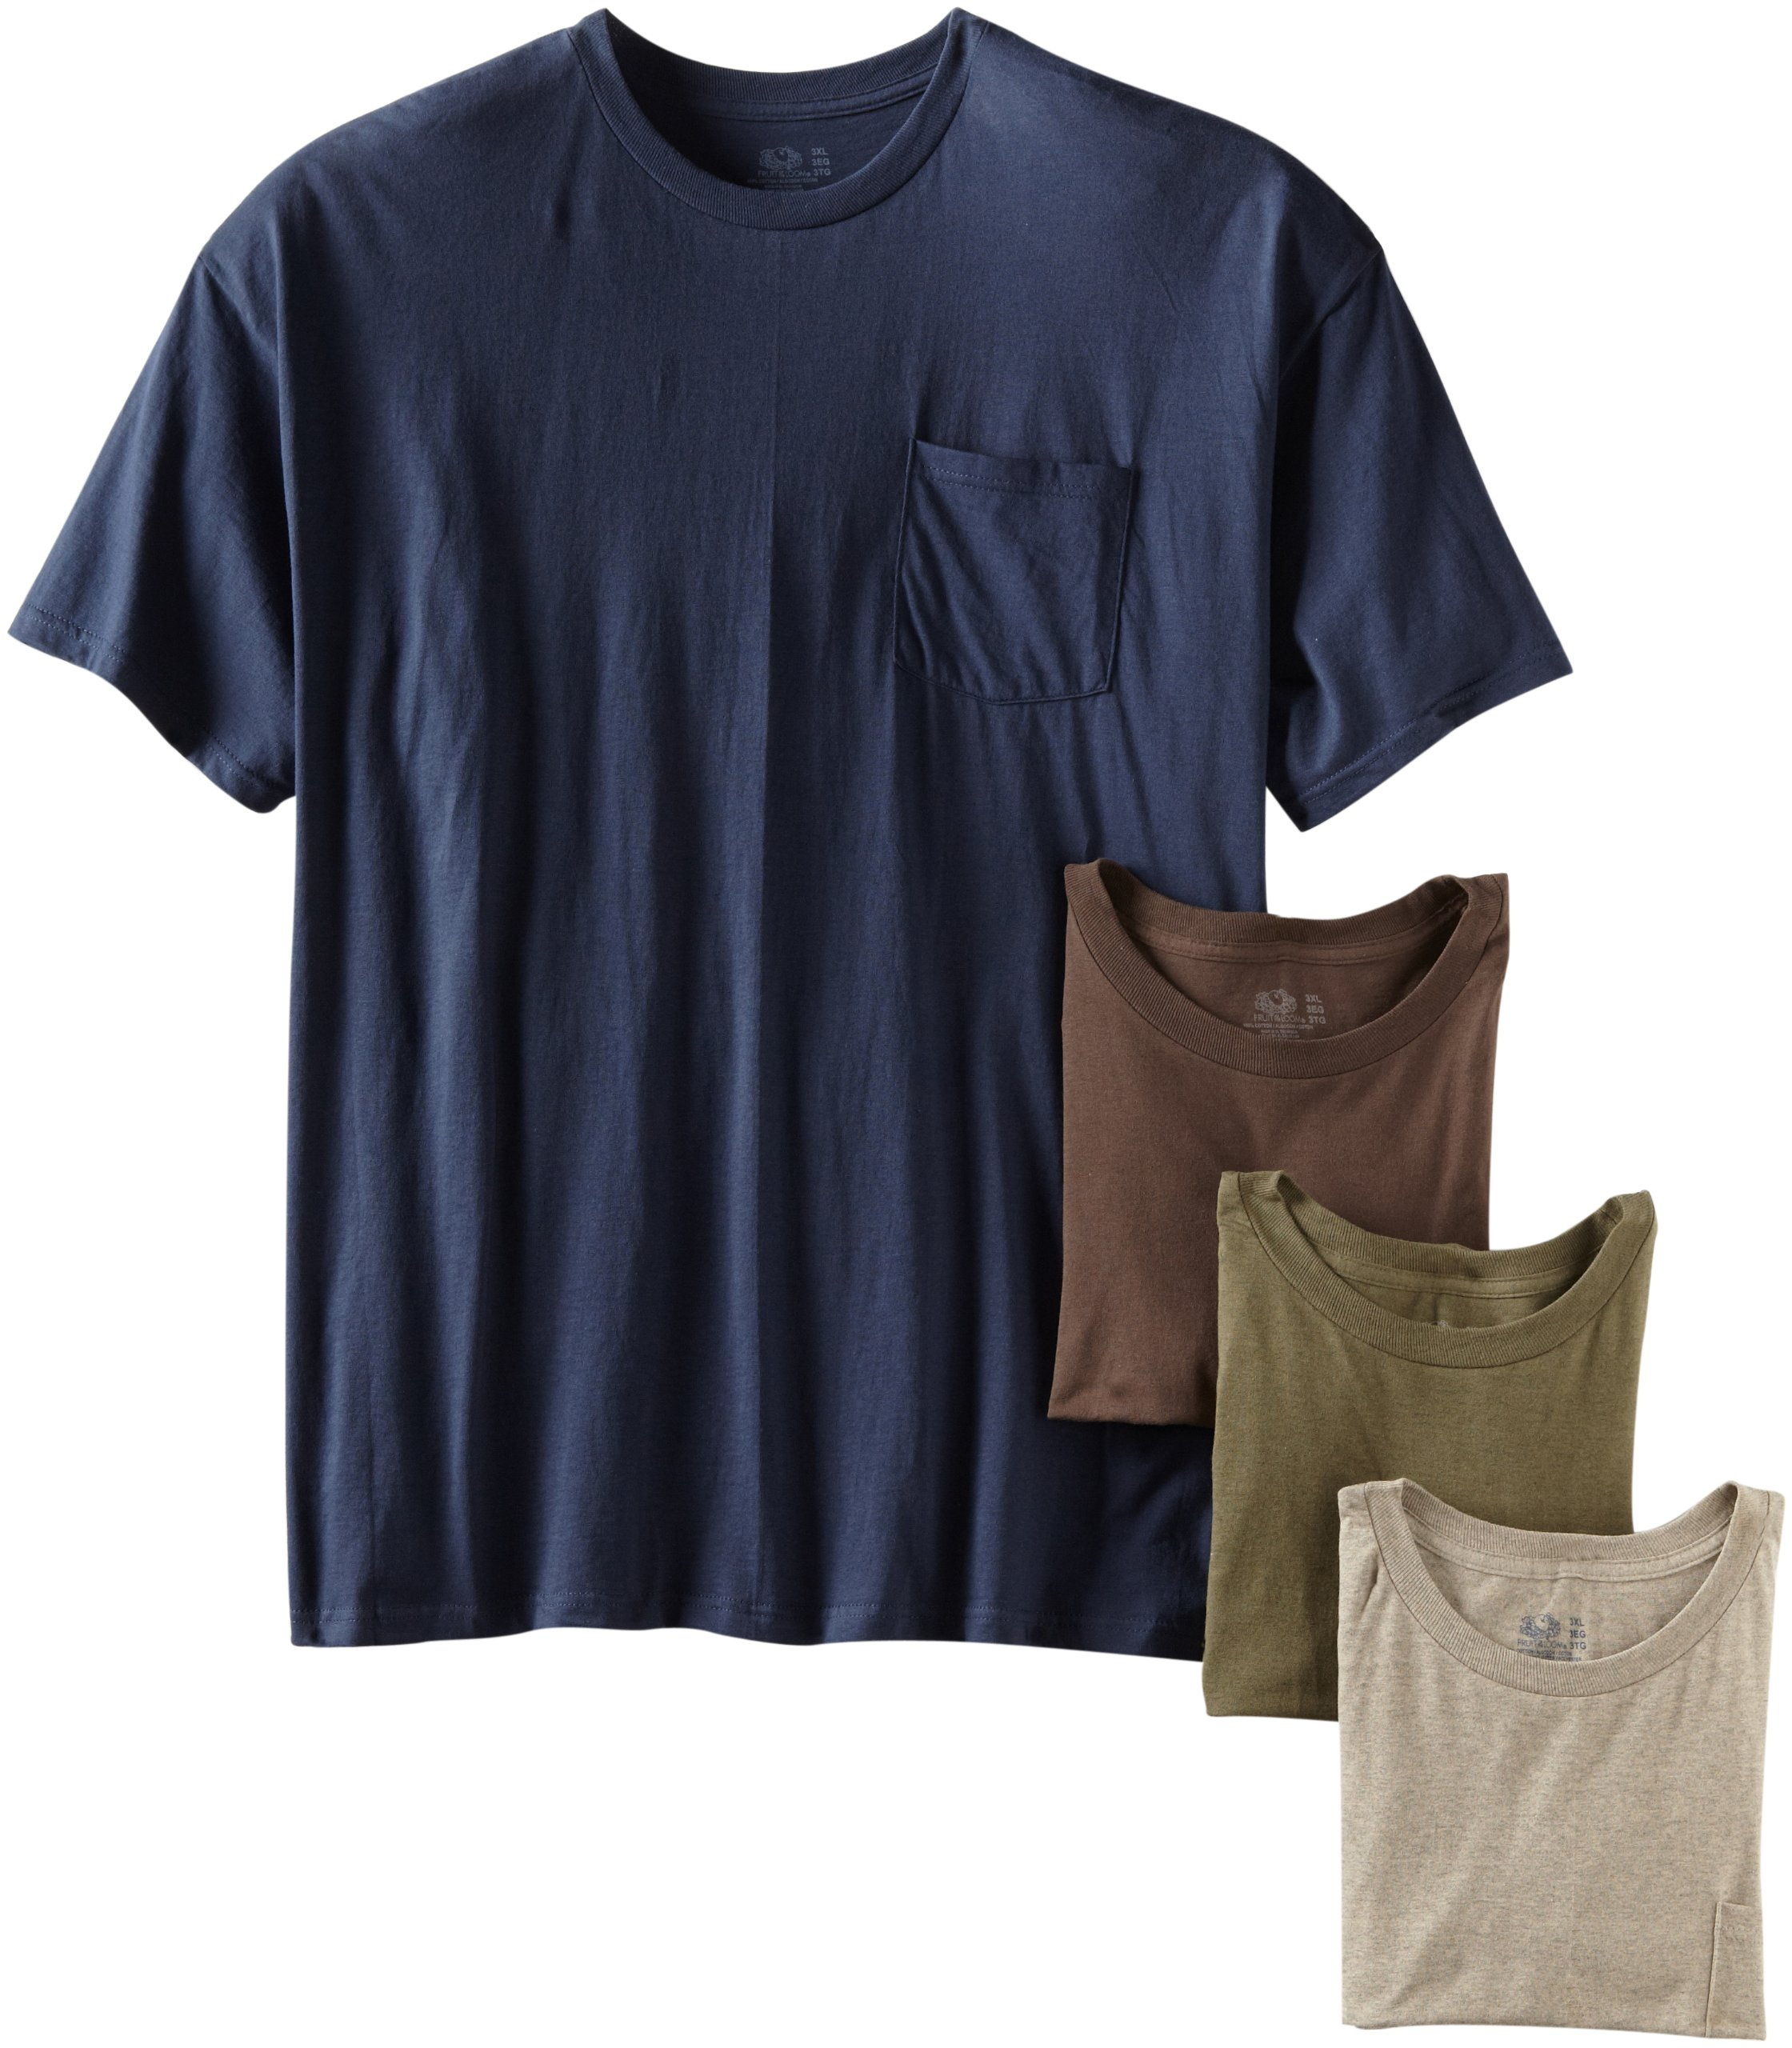 Fruit of the Loom Men's Pocket Crew Neck T-Shirt - X-Large - Assorted Earth Tones (Pack of 4) by Fruit of the Loom